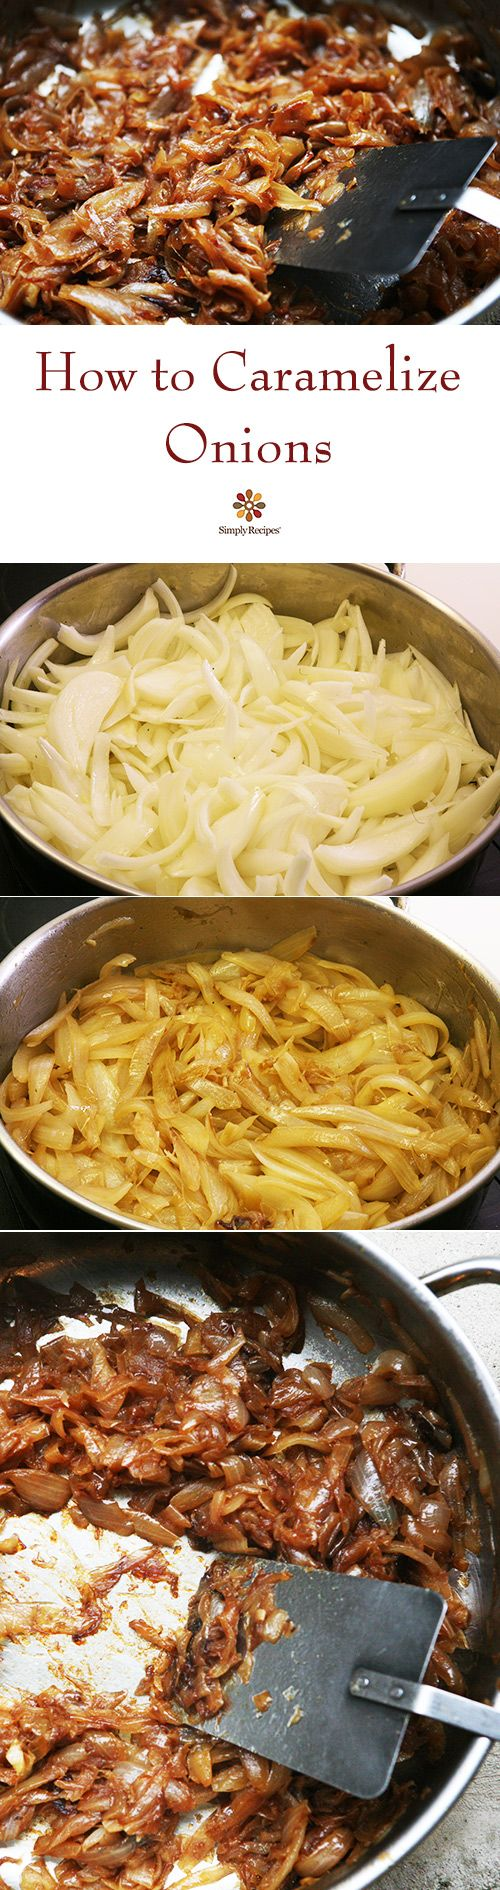 Caramelized onions add magic to any dish that uses onions. Here's an easy tutorial on how to make them! On SimplyRecipes.com #HowTo #Glutenfree